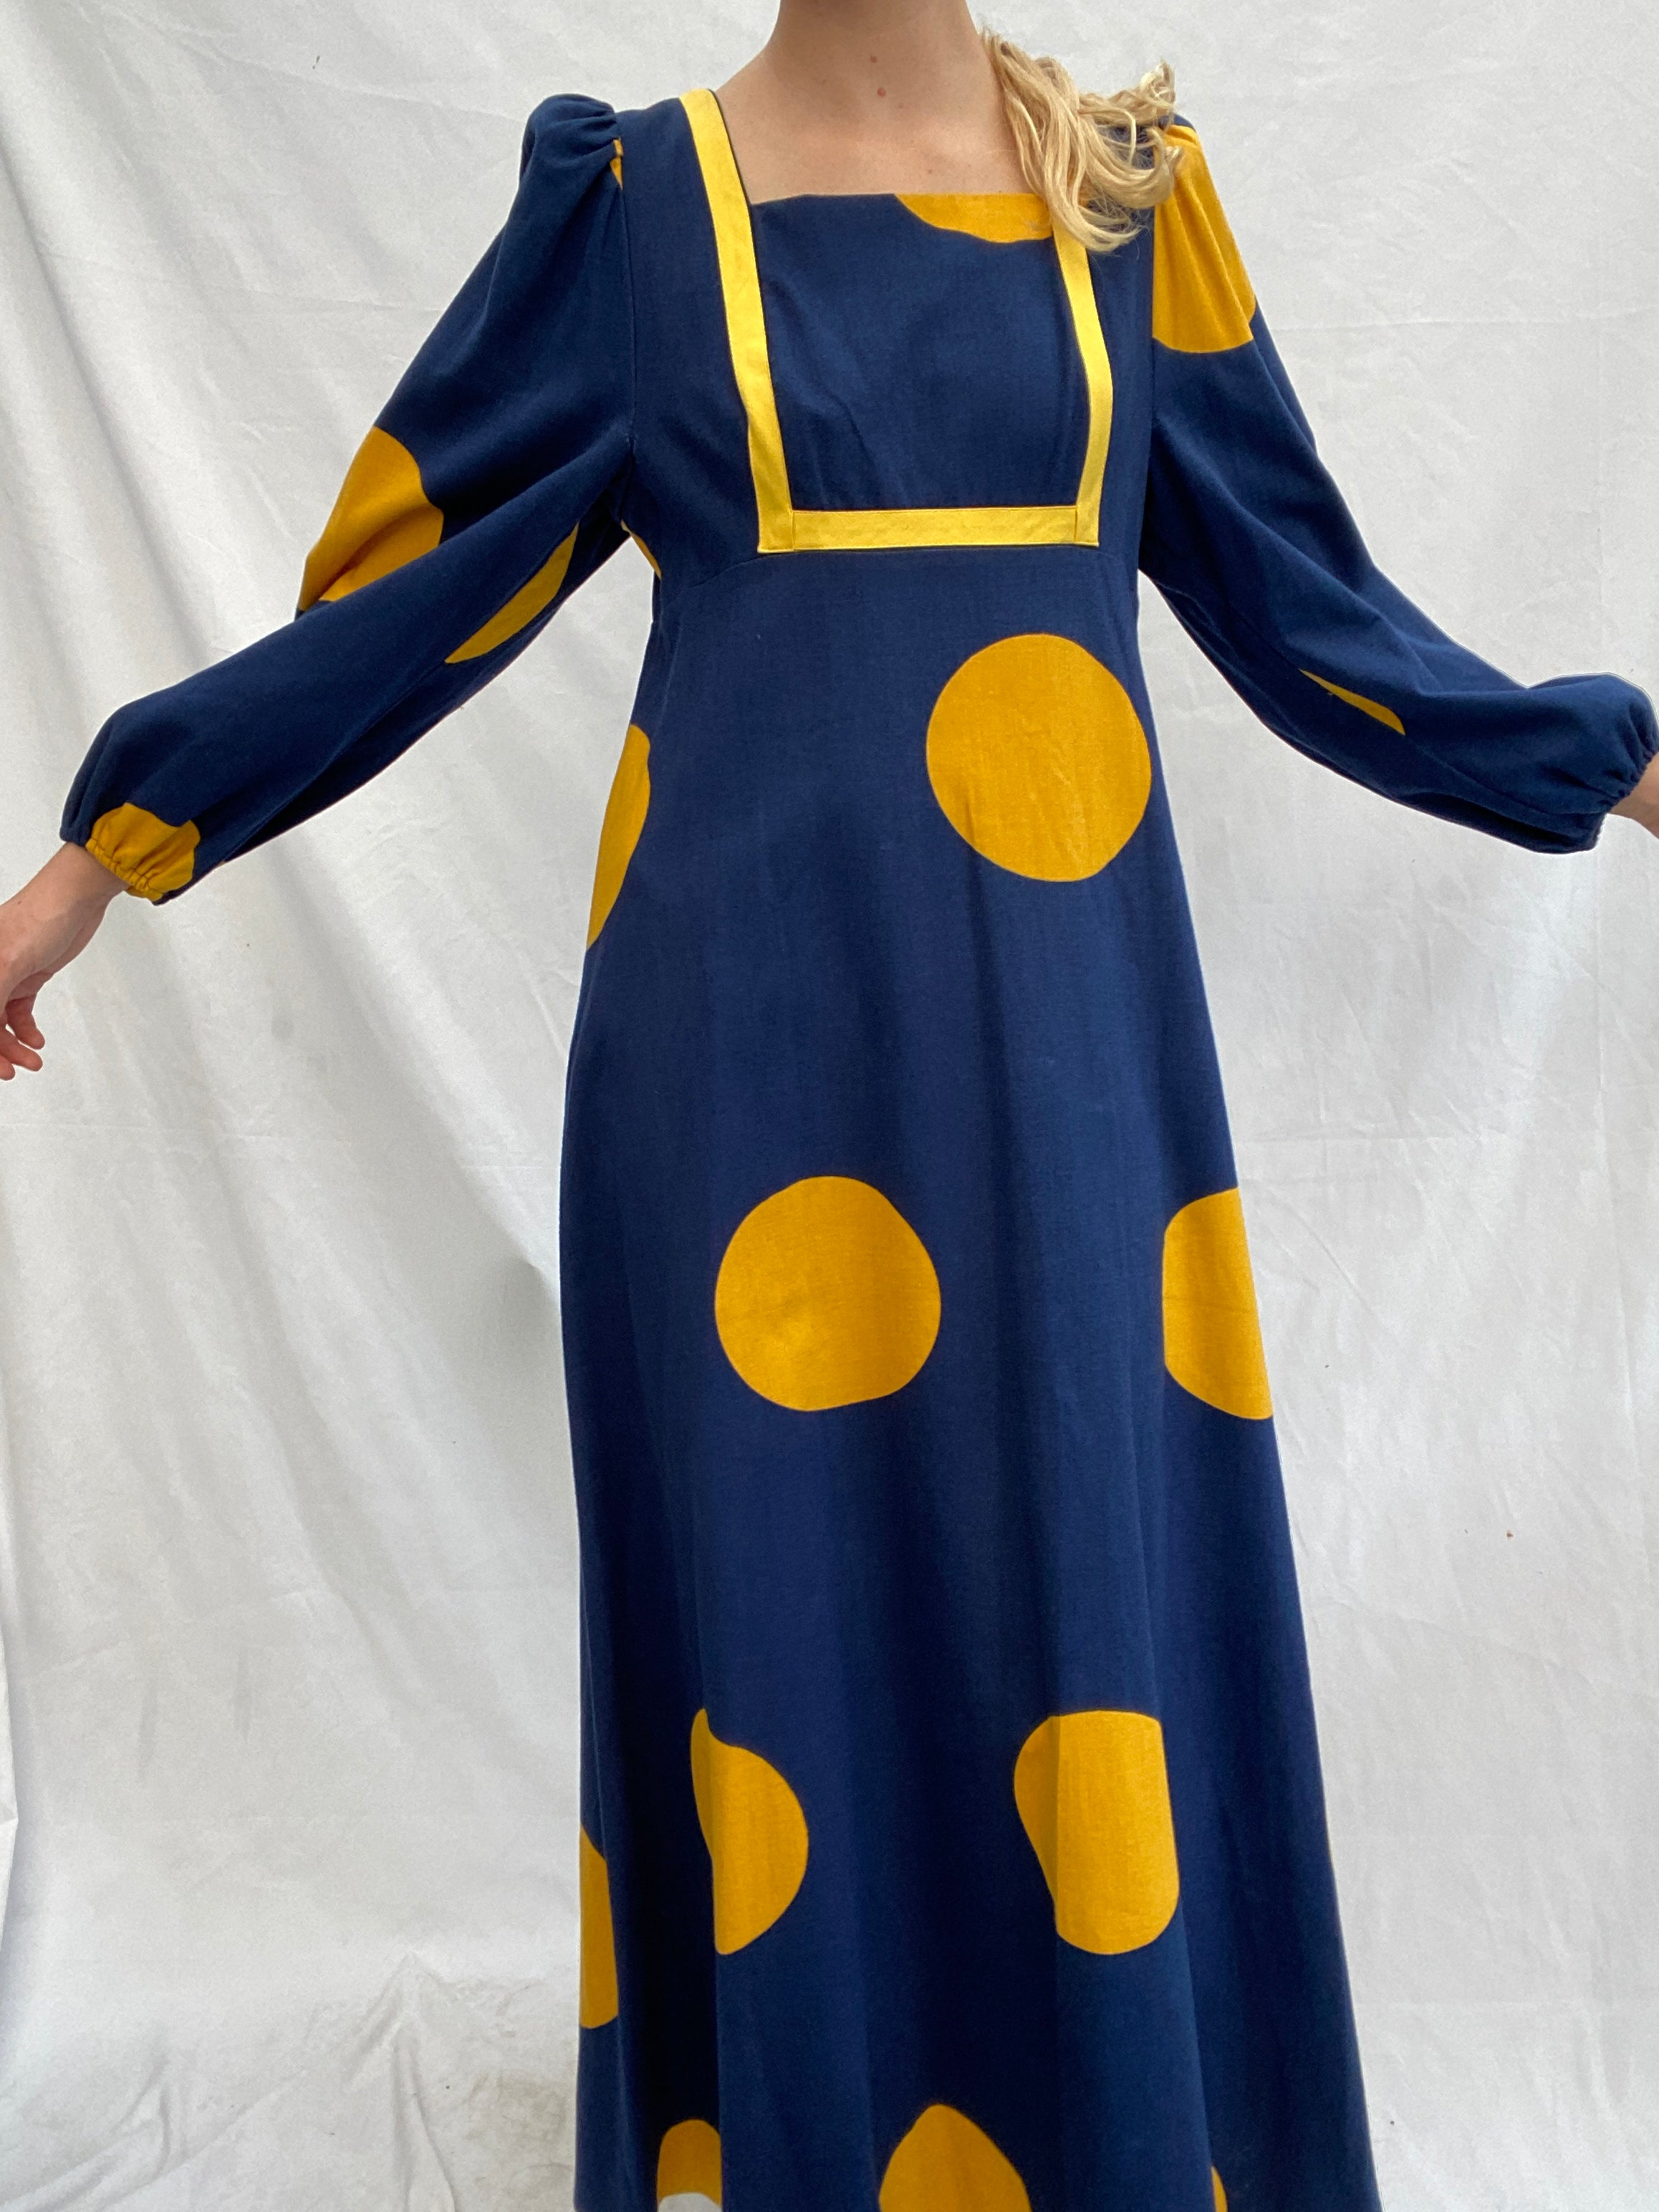 70's Long Sleeve Navy Dress with Yellow Circles